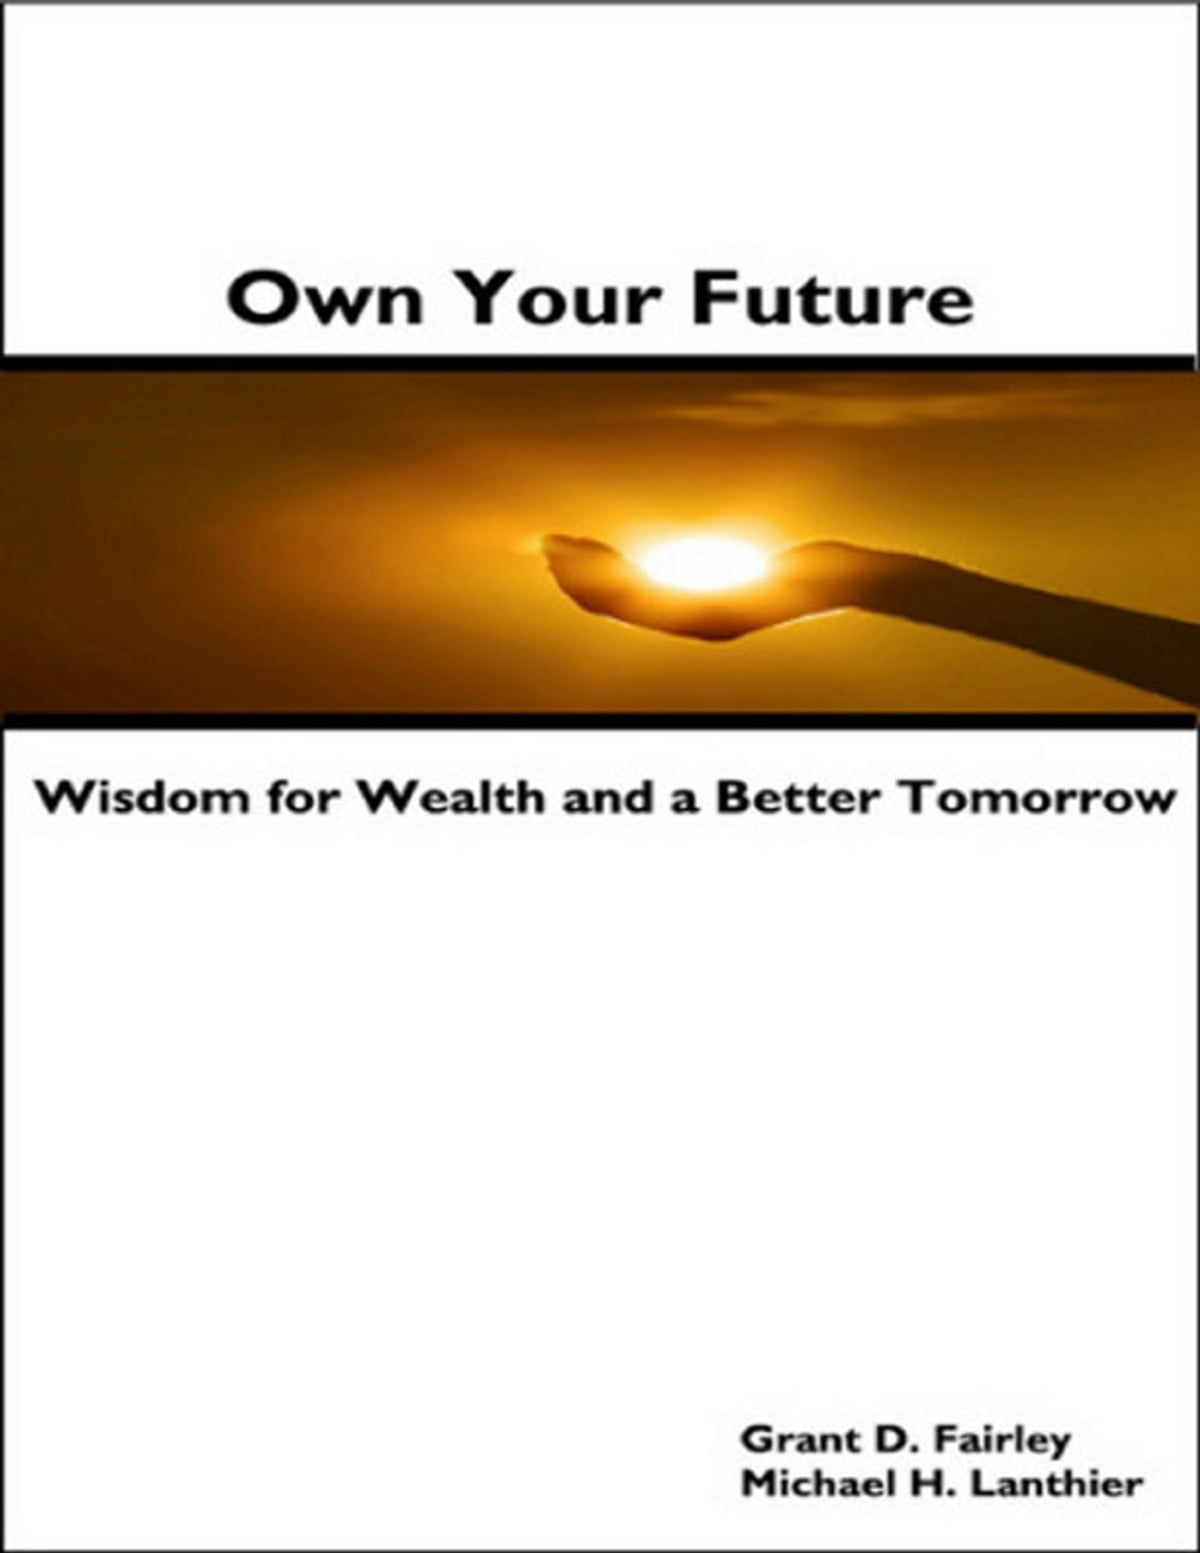 Own Your Future - Wisdom for Wealth and a Better Tomorrow